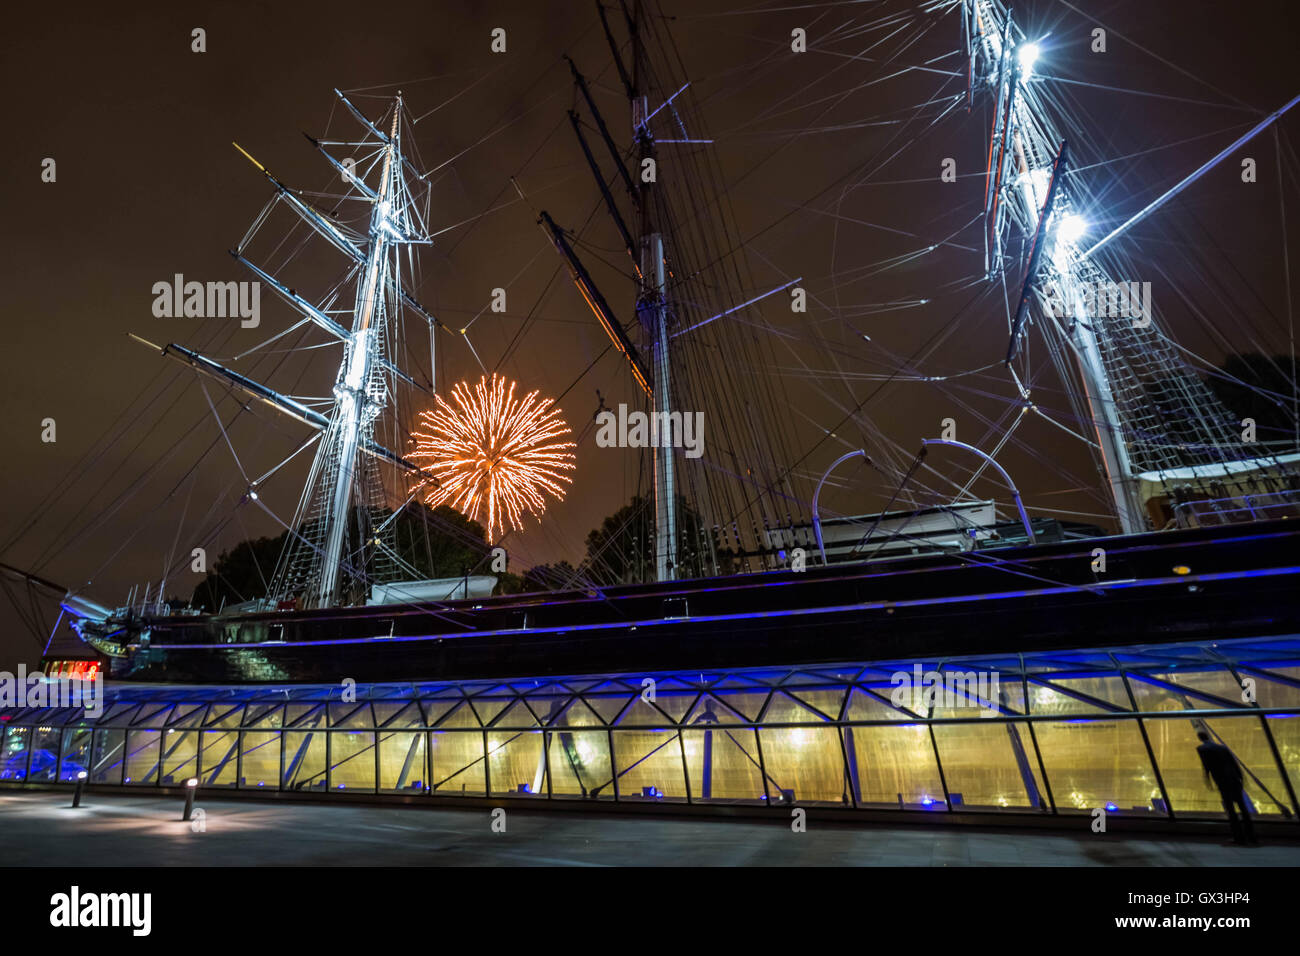 London, UK. 15th September, 2016. Cutty Sark ship seen during firework display at Royal Greenwich Tall Ships Festival - Stock Image